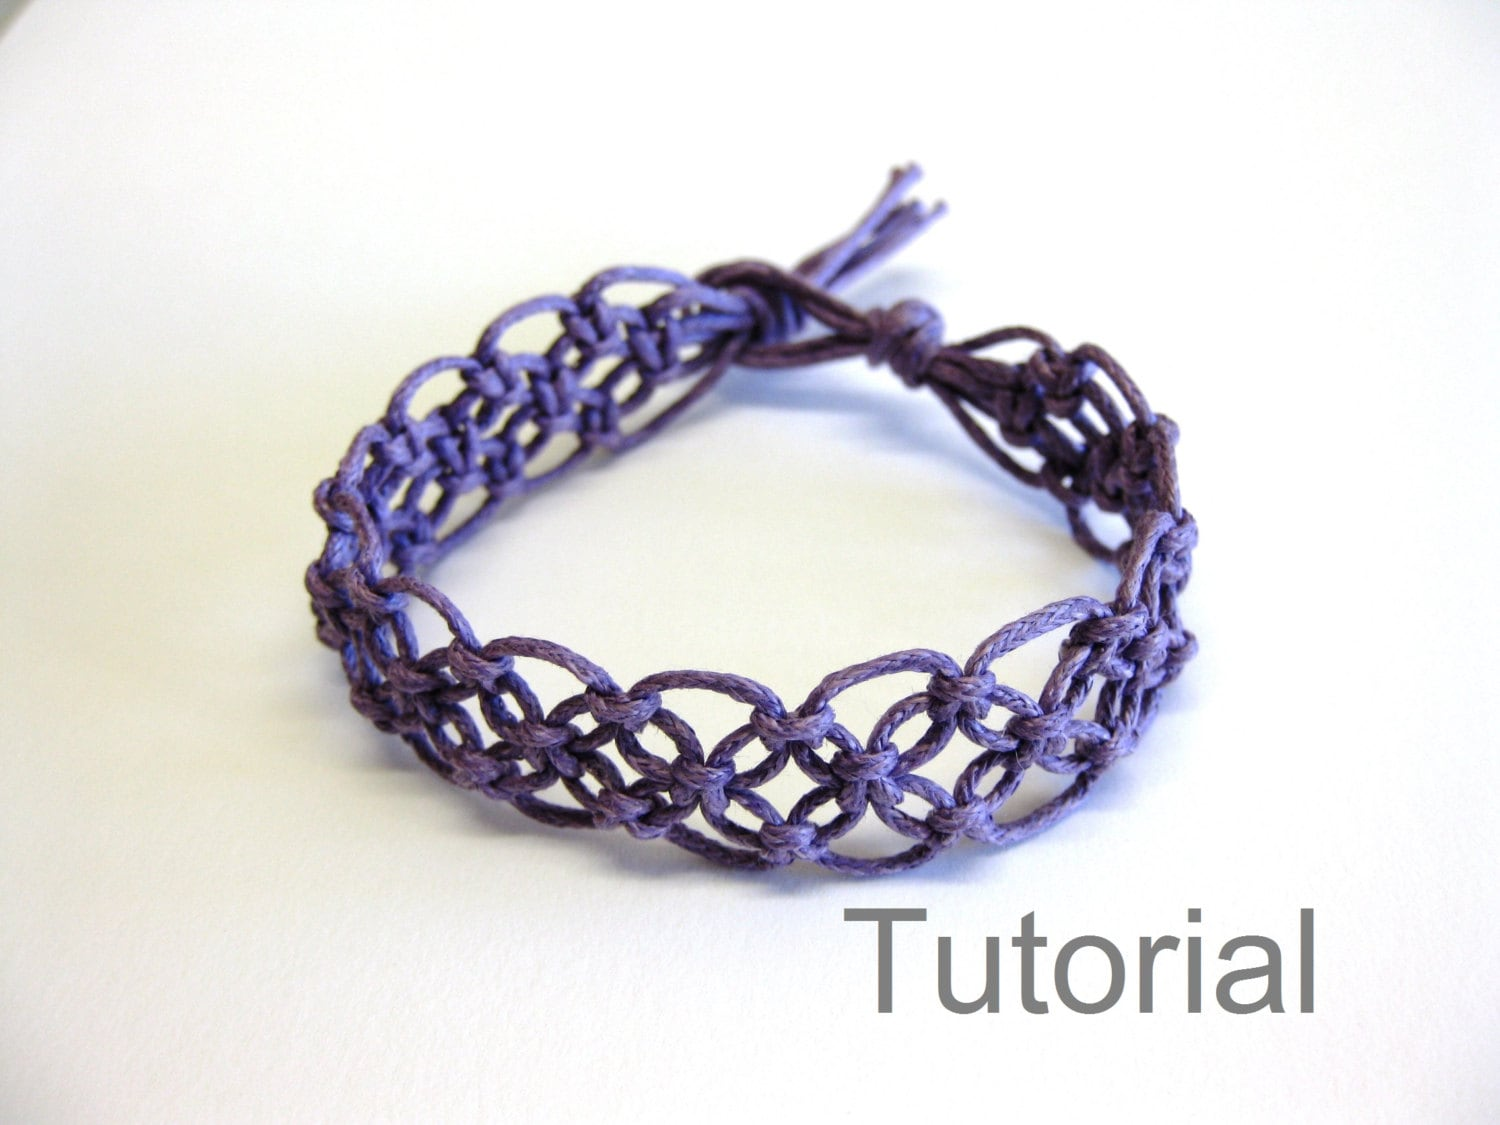 macrame bracelets tutorials lacy macrame bracelet pattern tutorial pdf purple step by step 1876